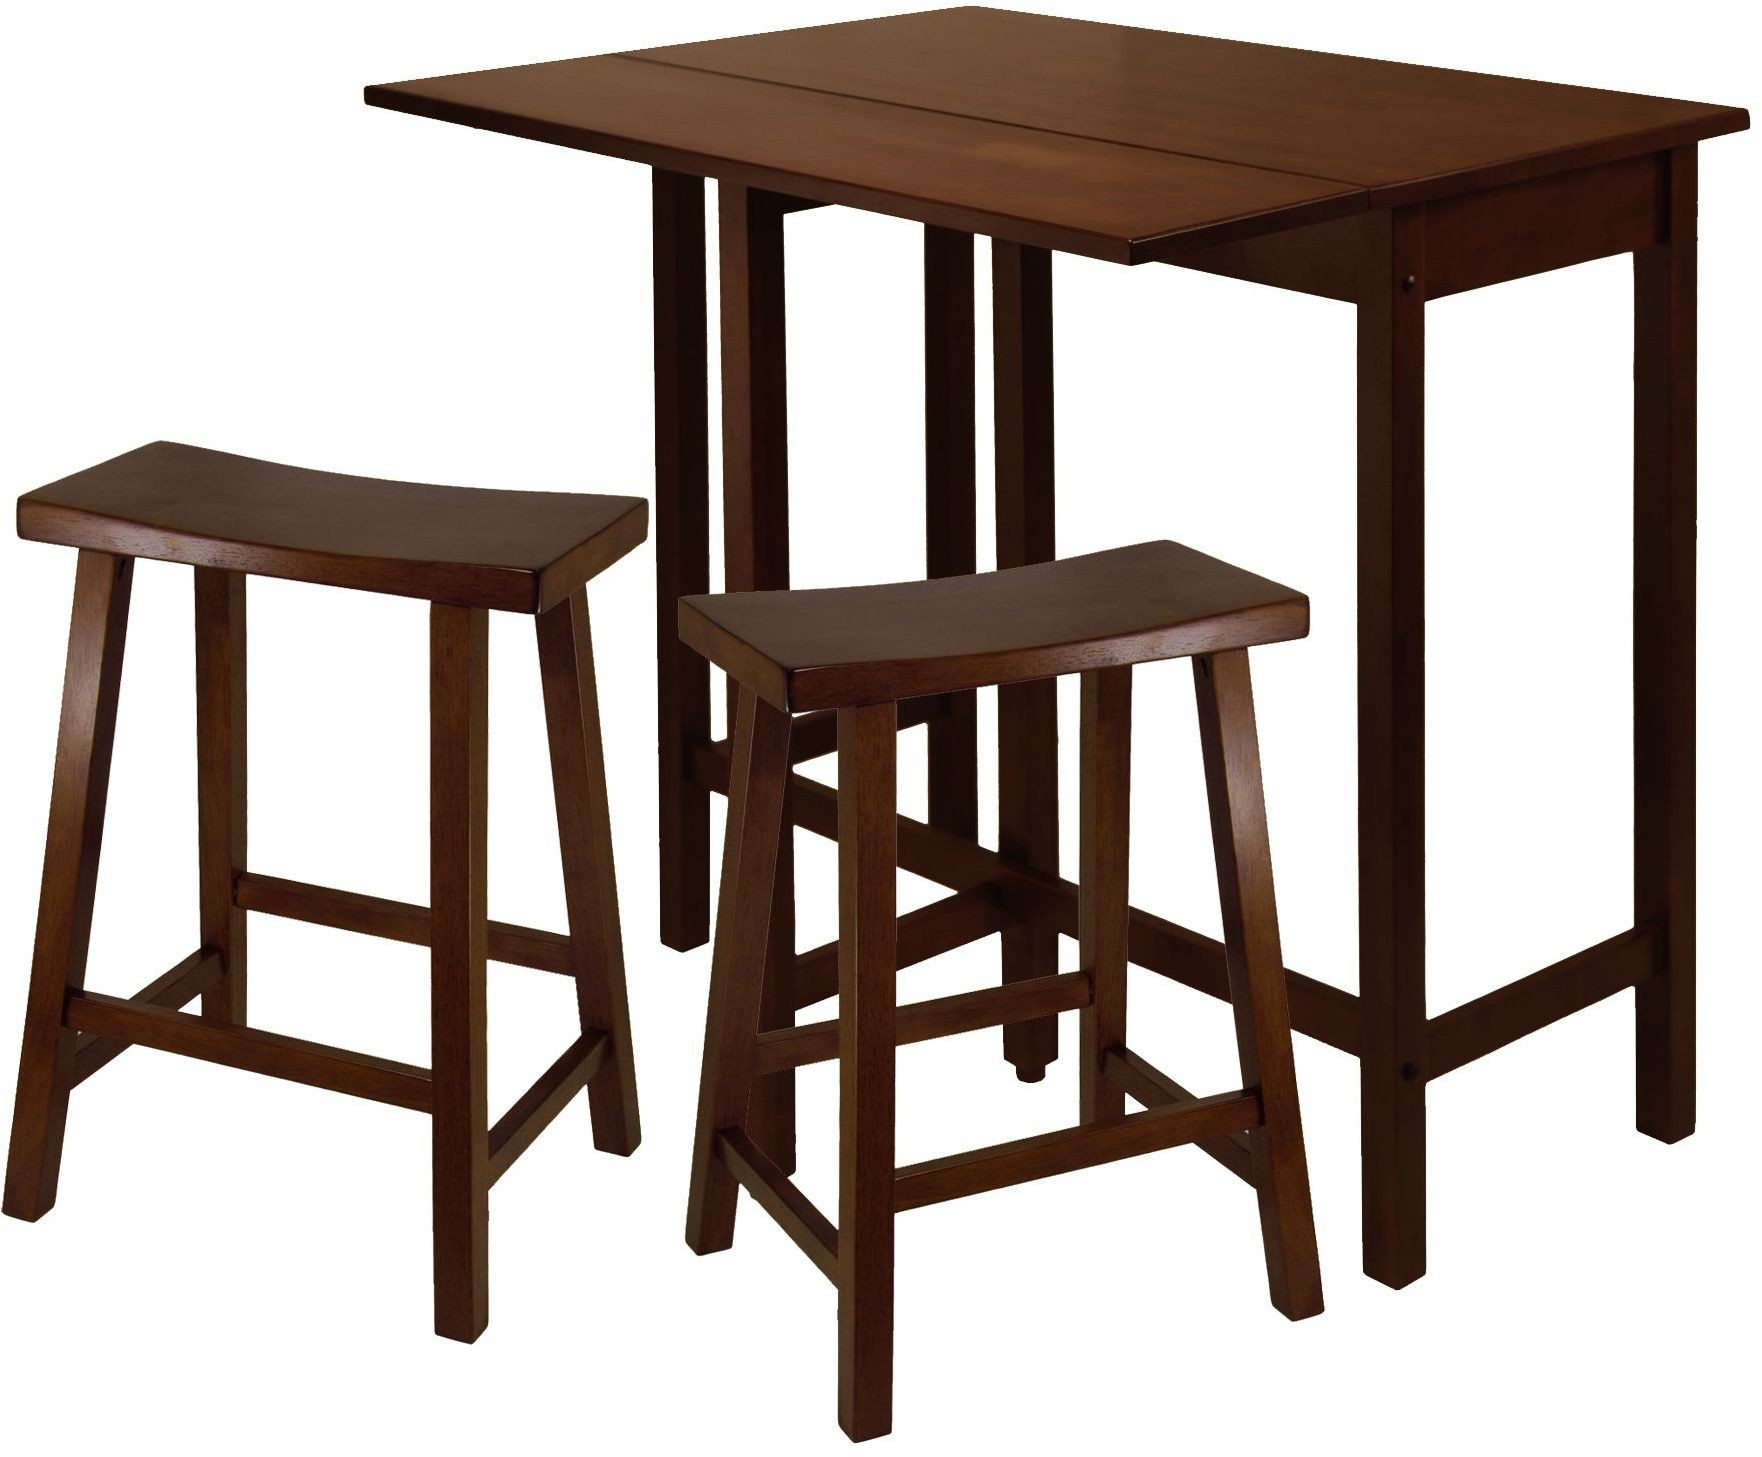 Satori Antique Walnut 24 Quot Saddle Bar Stool Set Of 2 From